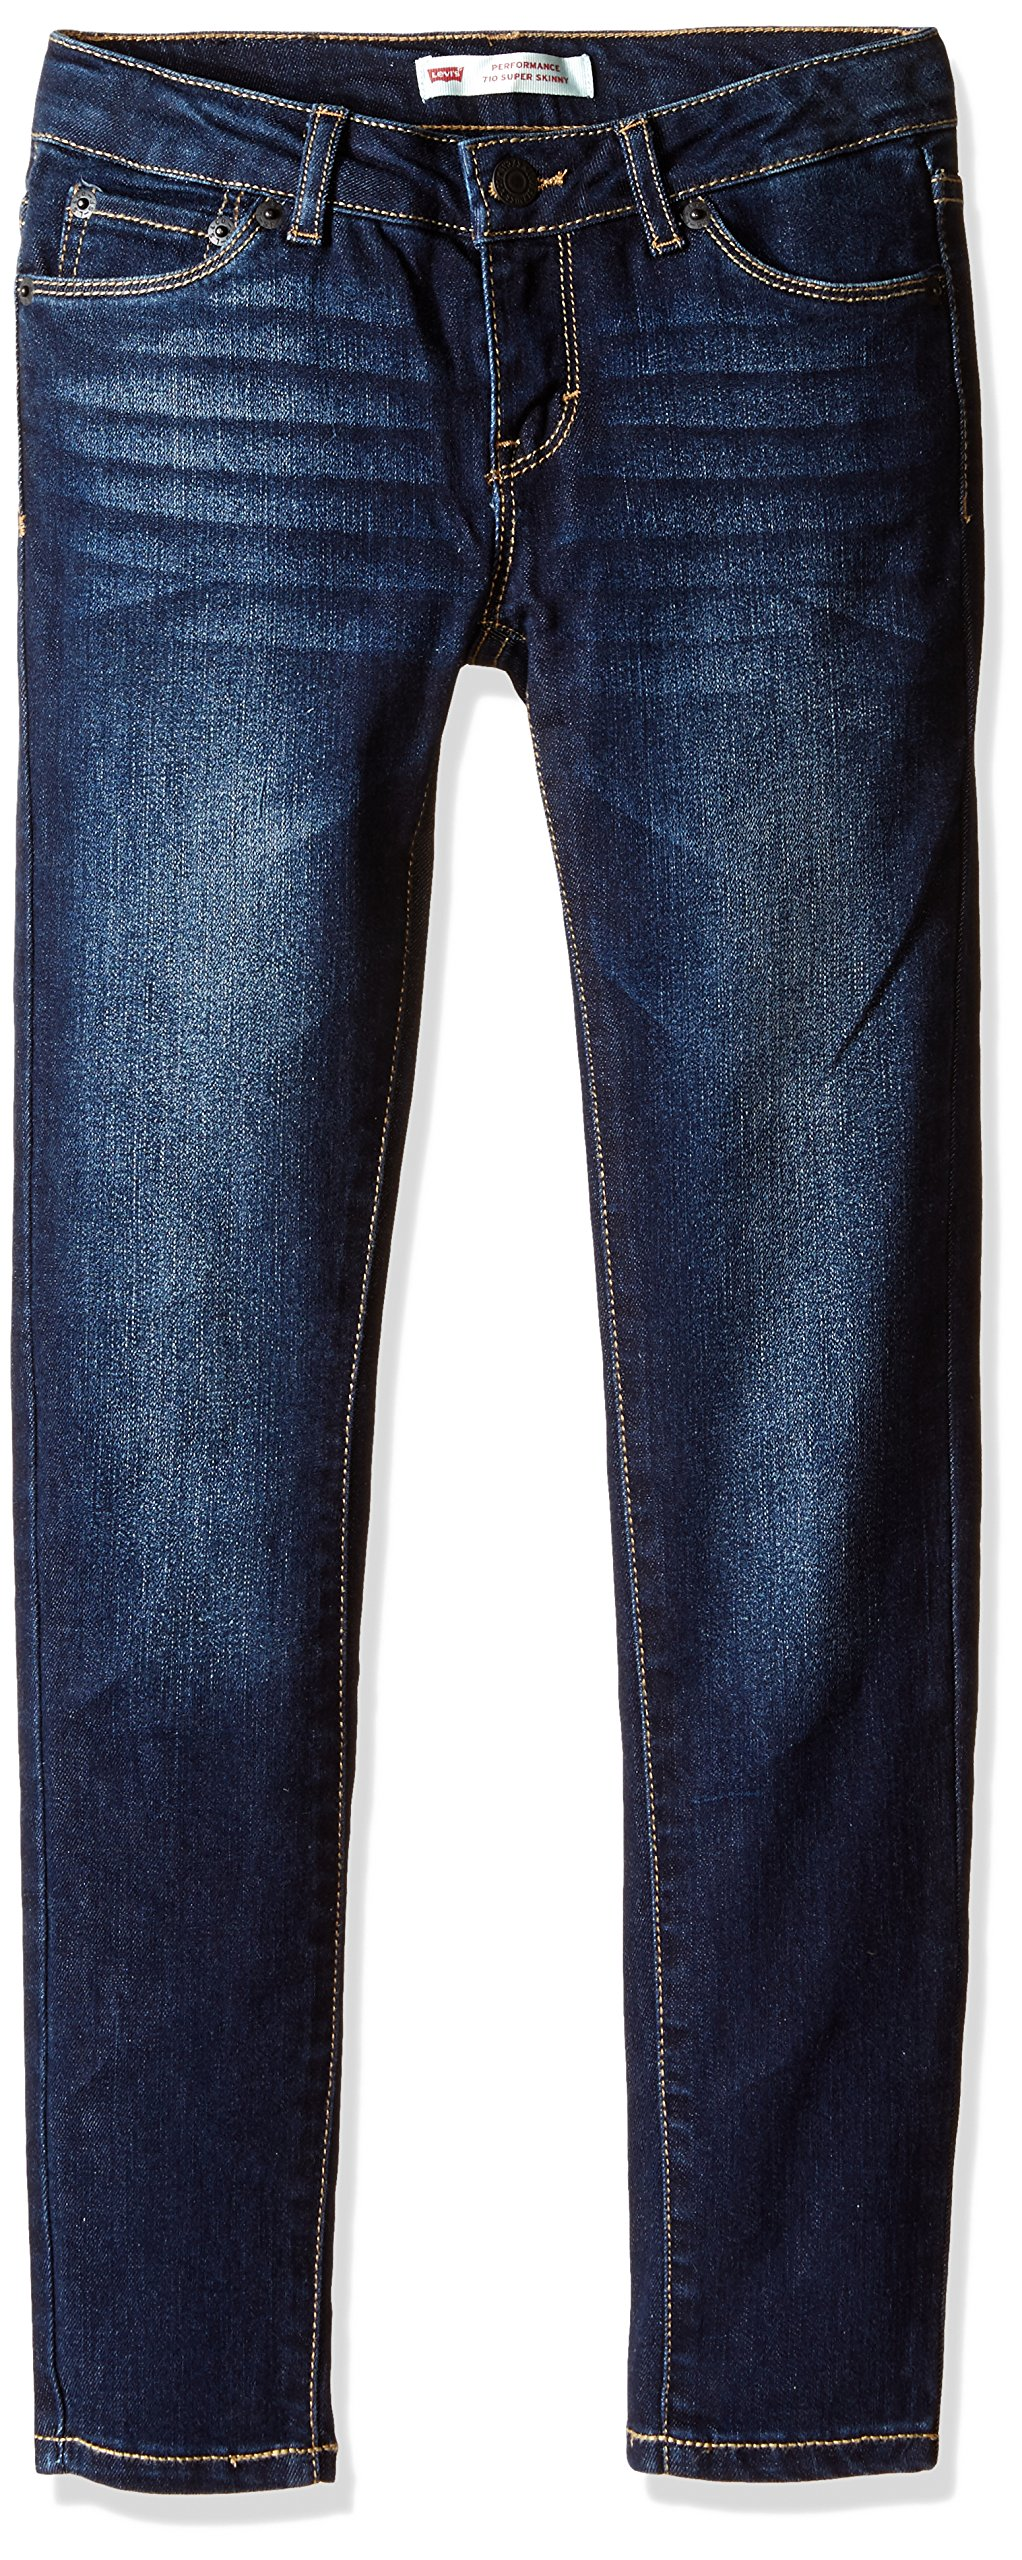 Levi's Girls' Big 710 Super Skinny Fit Performance Jeans, Iron Sky, 12 by Levi's